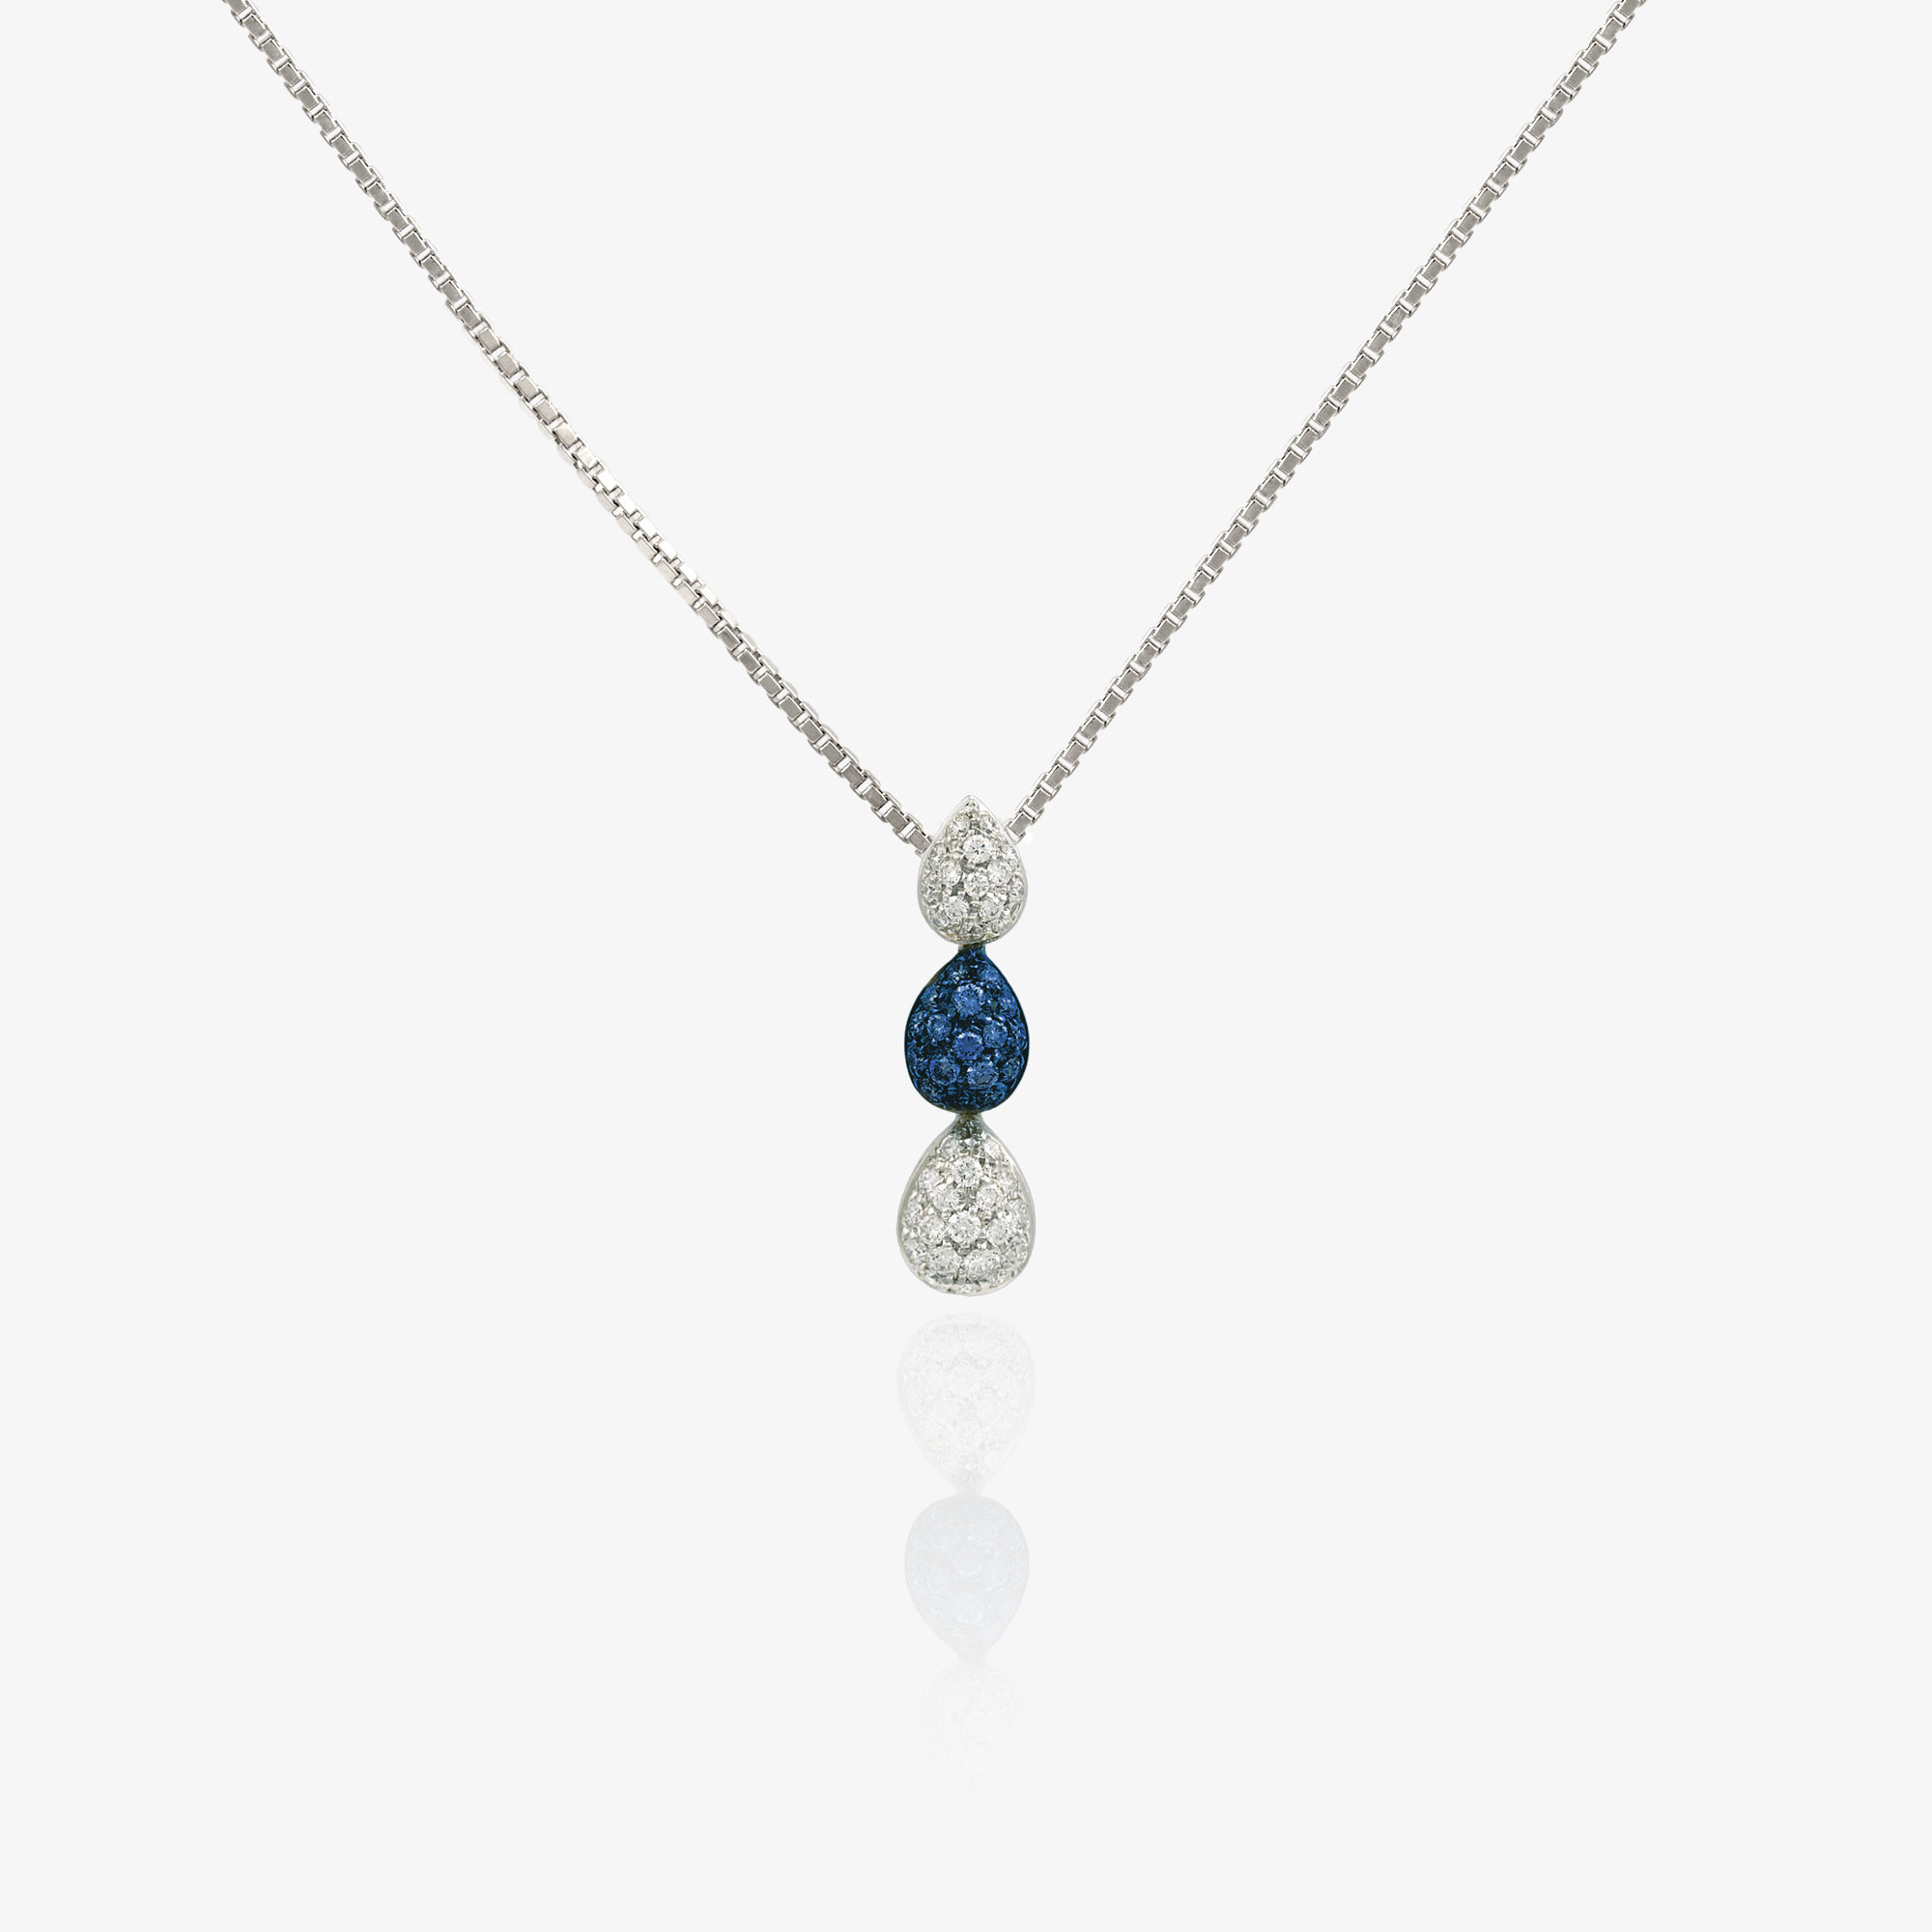 Ellissi necklace